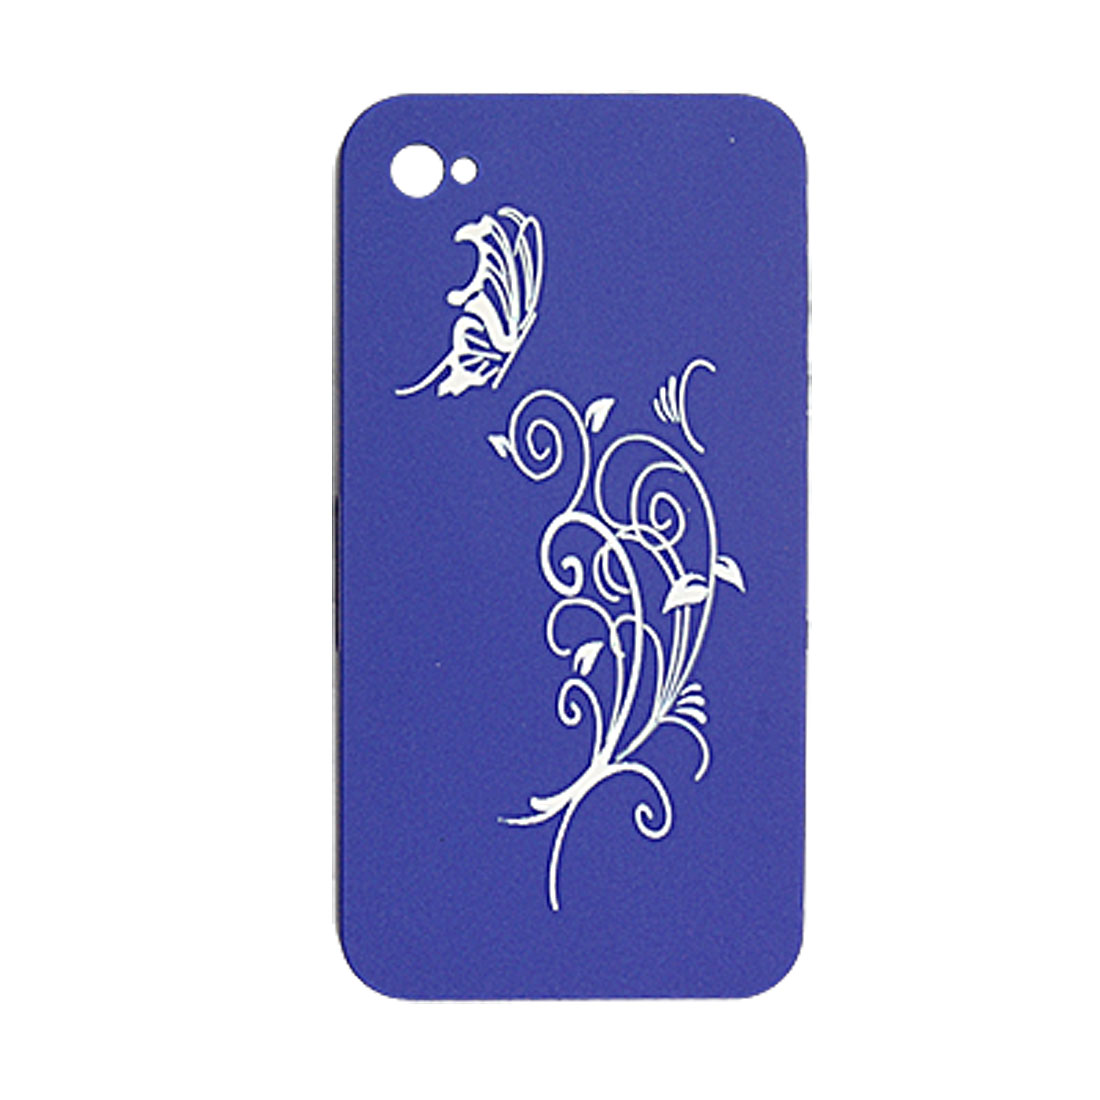 Butterfly Vine Pattern Plastic Cover Blue for iPhone 4